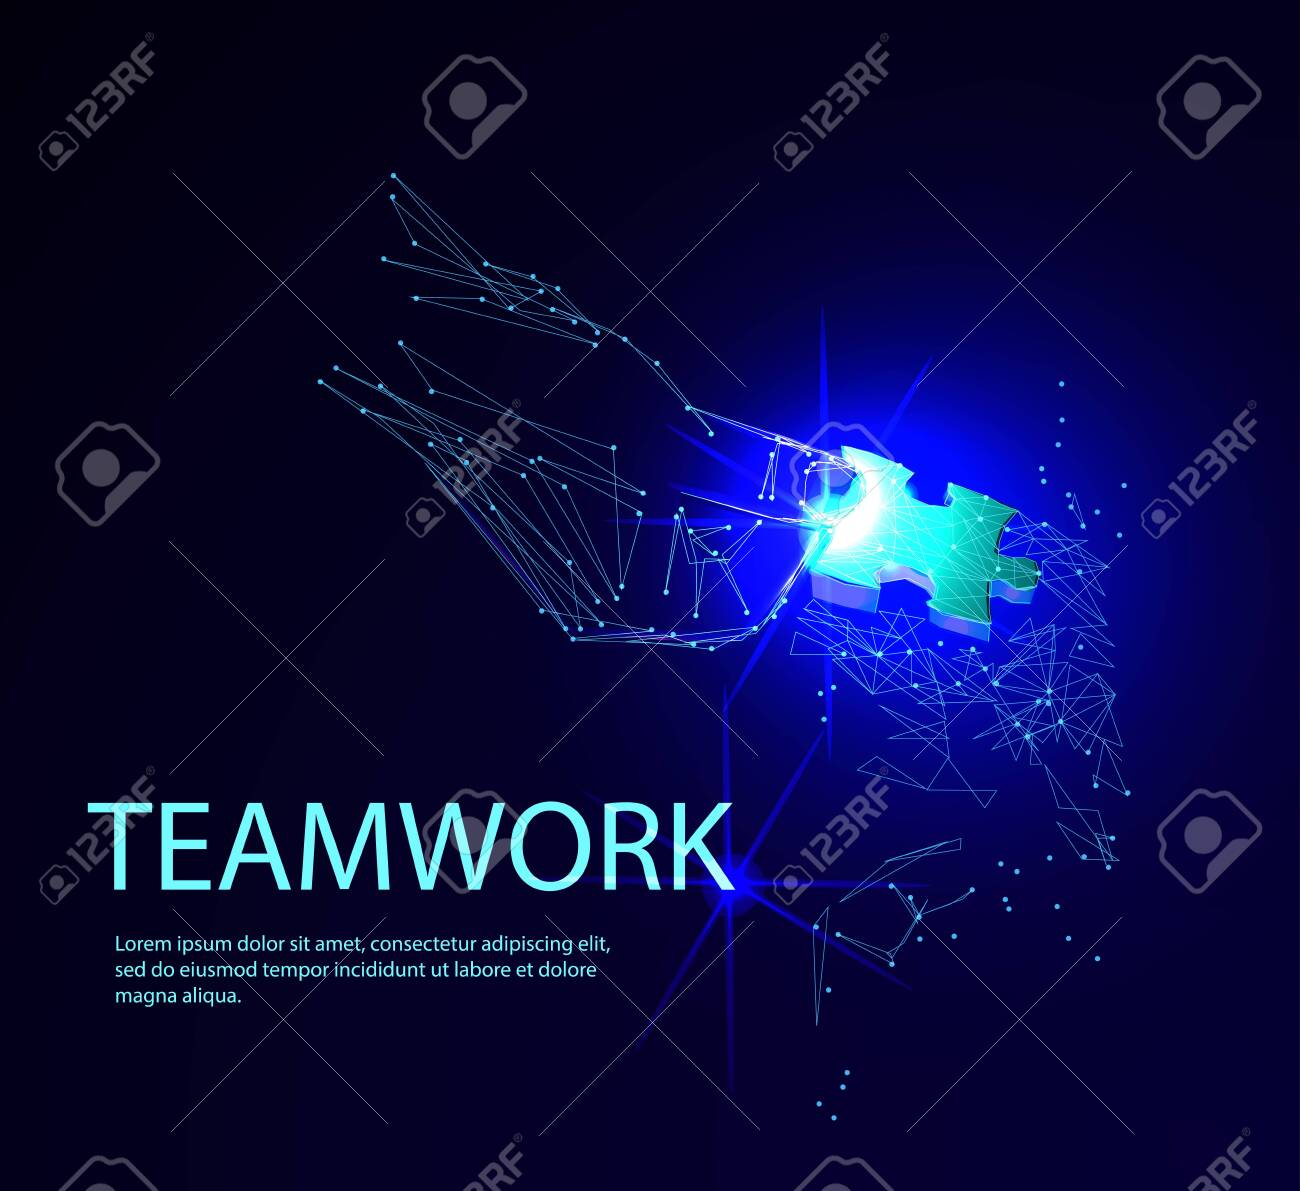 Abstract puzzle on dark blue background. Network or teamwork symbol composed of polygons. Low poly vector illustration of a starry sky or Cosmos, consists of lines, dots and shapes - 123516916